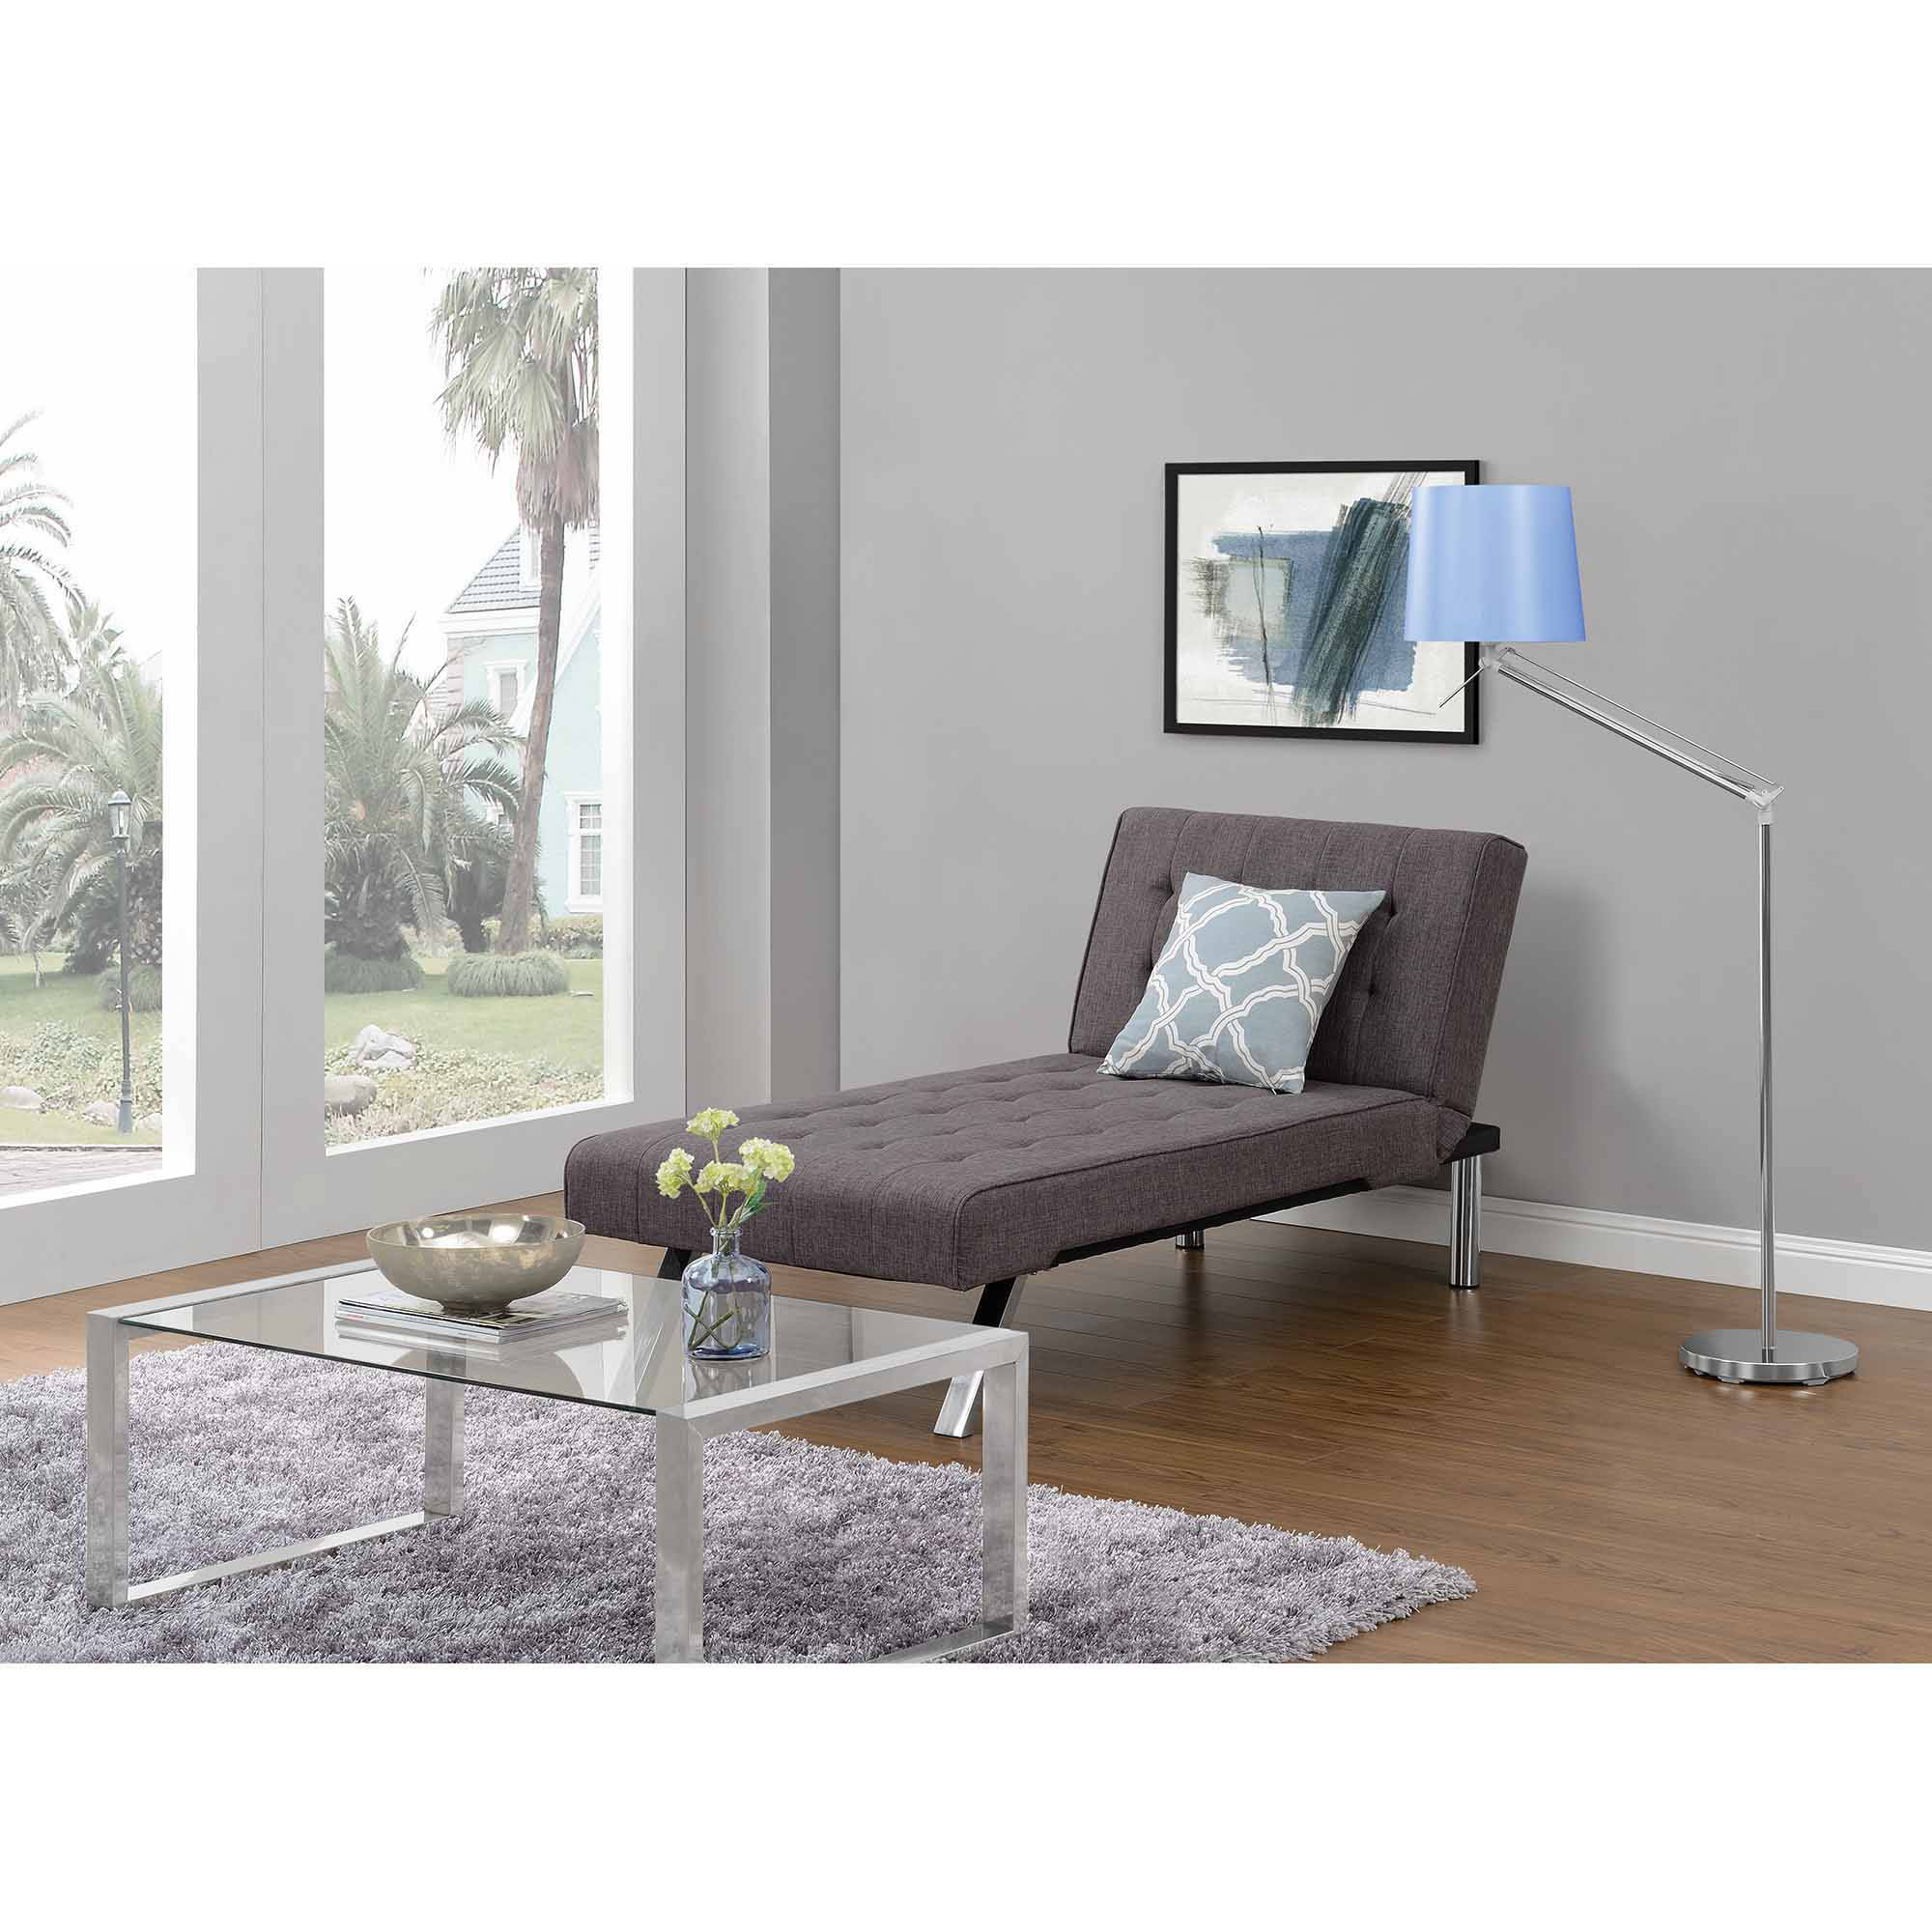 Emily Futon Chaise Lounger, Multiple Colors